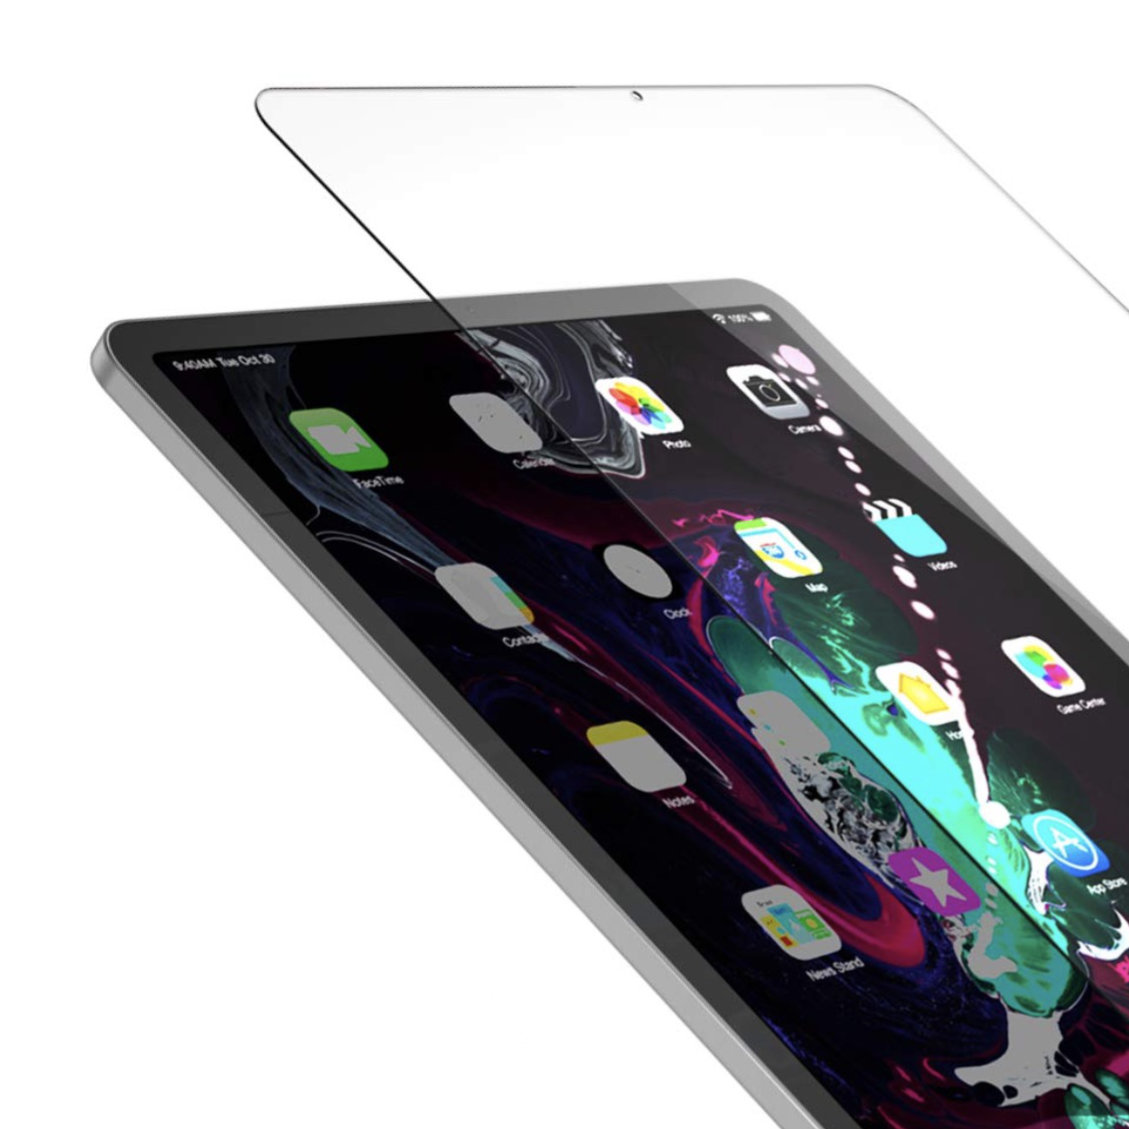 Maxboost Apple iPad Pro 12.9 2018 tempered glass screen protector